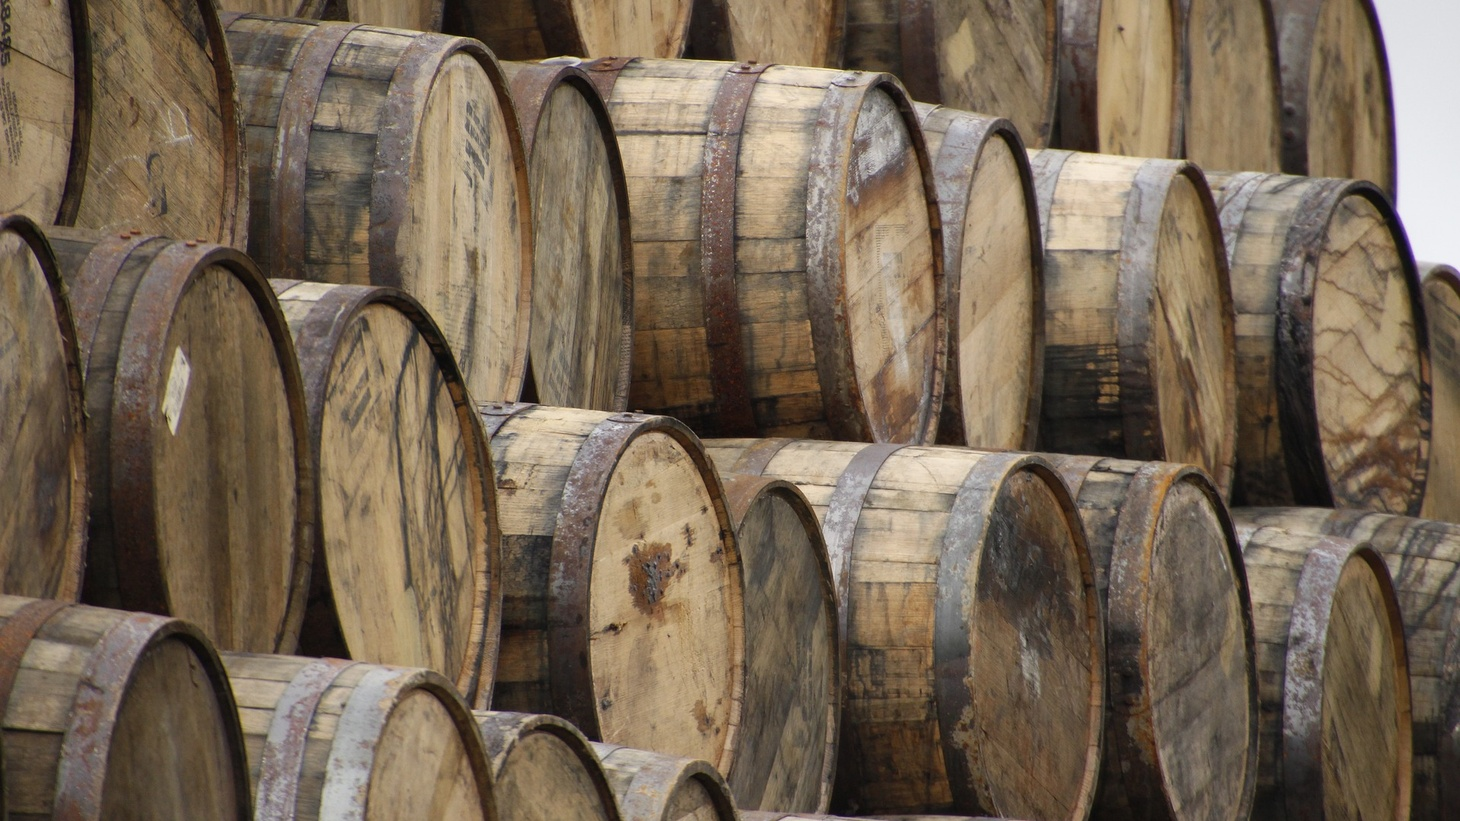 Wood biologist Artur Cisar-Erlach says that 80% of the flavor and color of whiskey comes directly from the wood barrel.